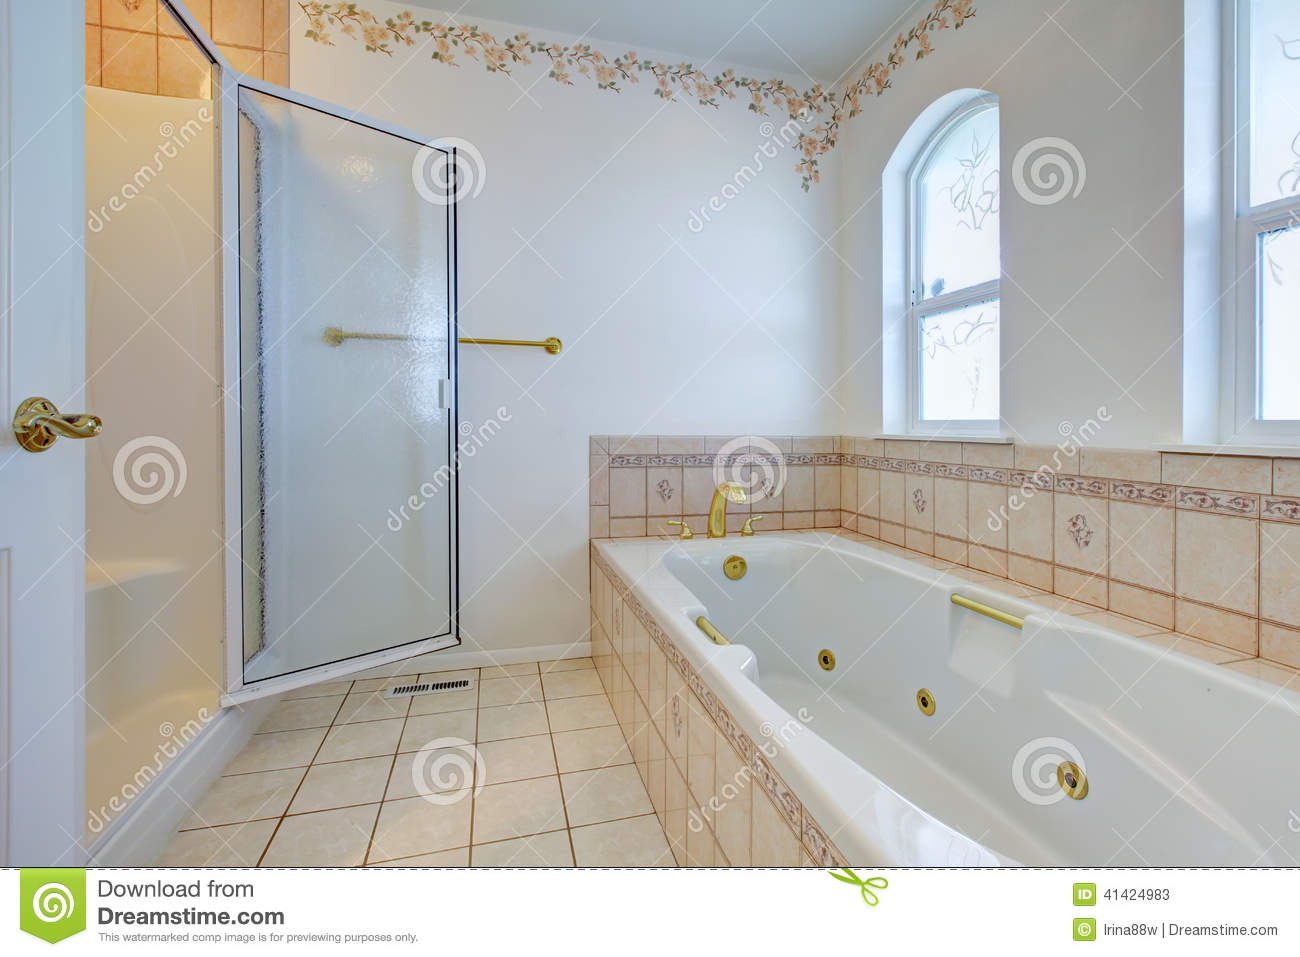 Tile Bathroom Trim modern bathroom interior with tile shower trim stock photo - image